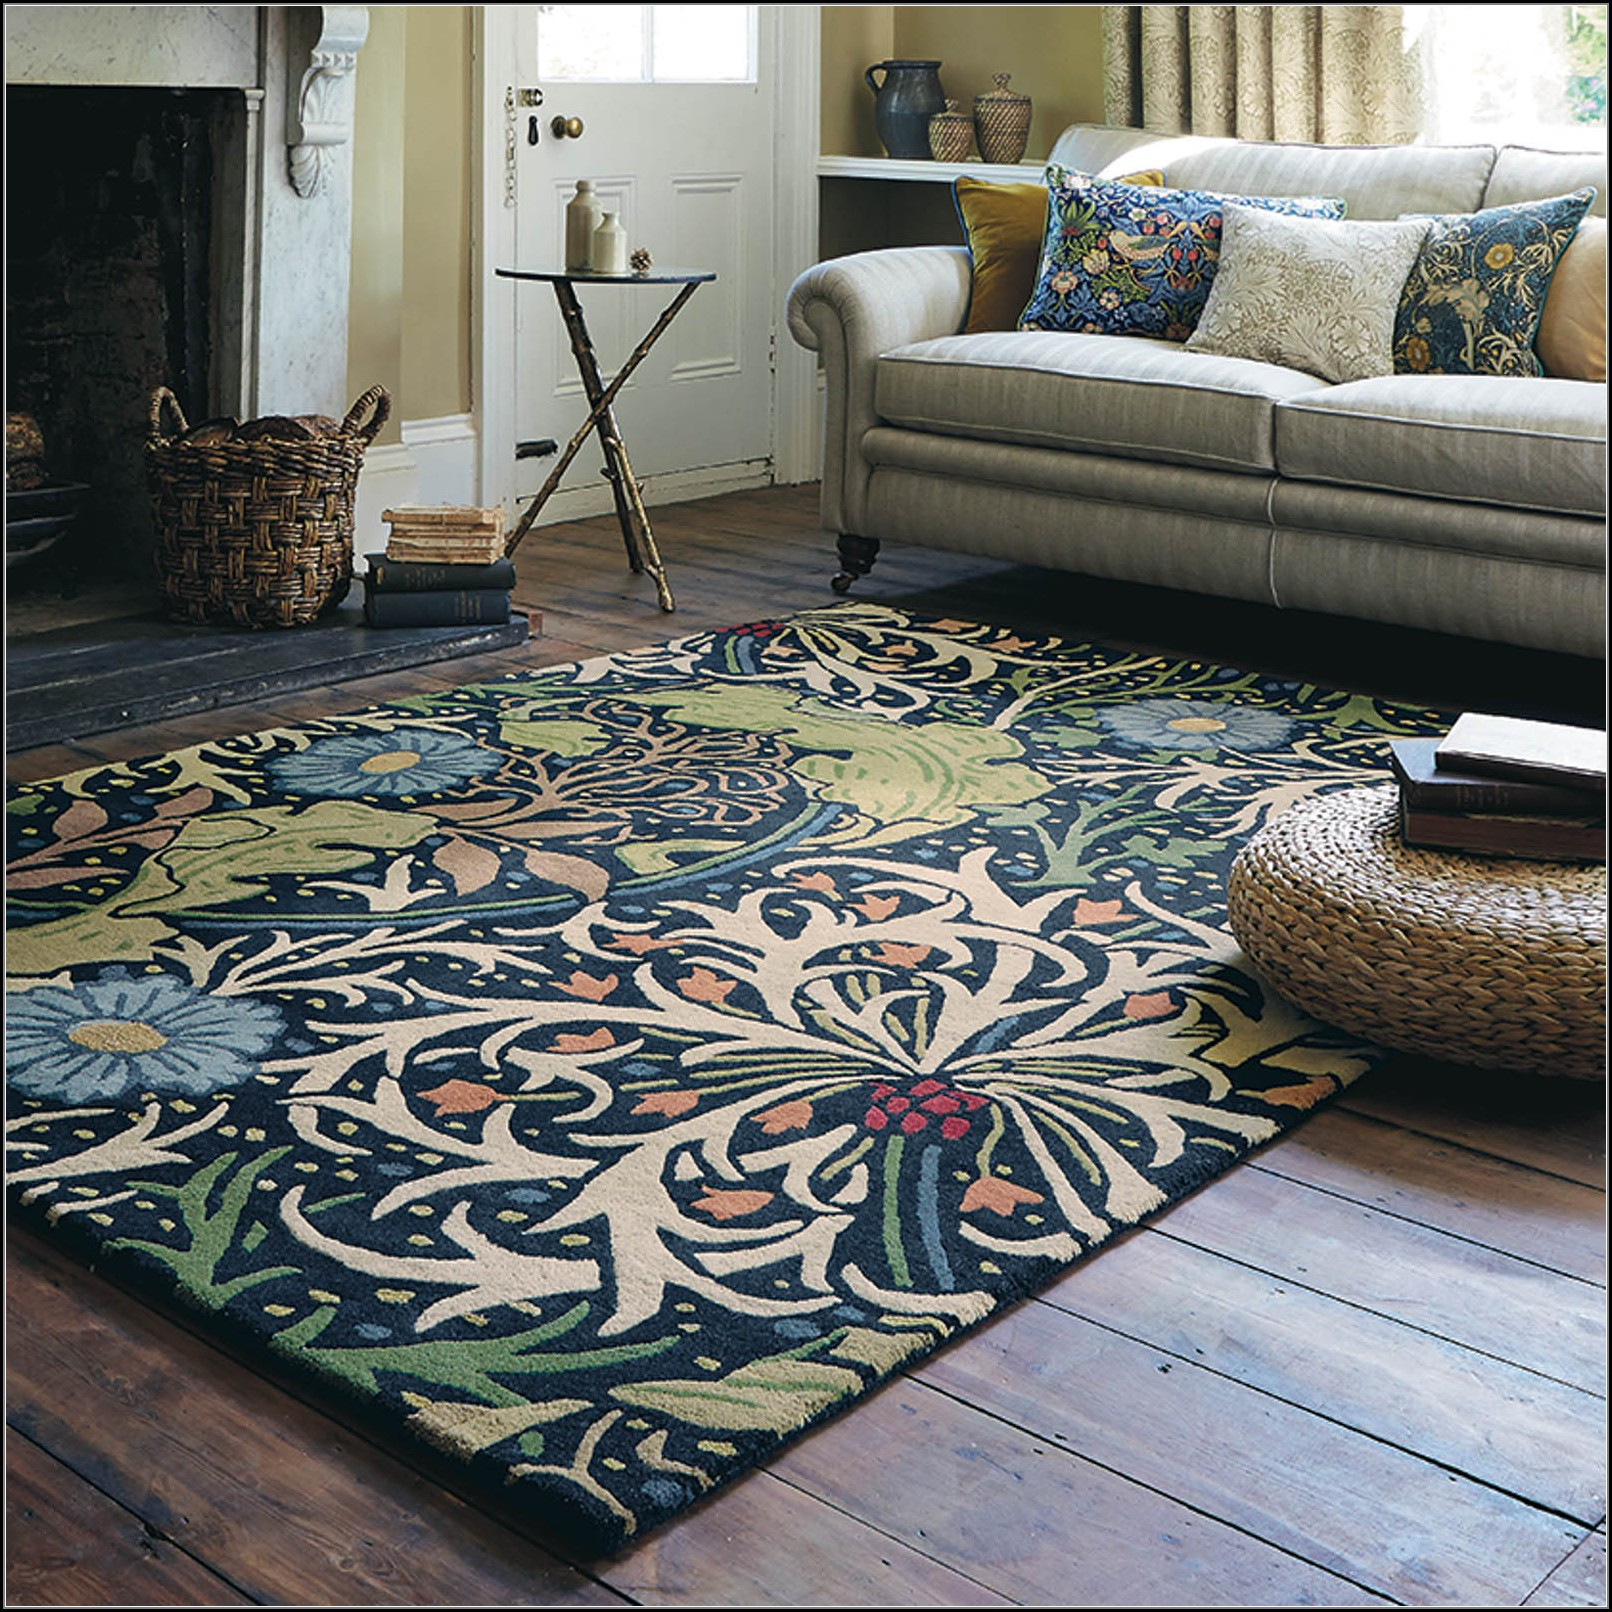 William Morris Rugs Uk Home Decorating Ideas